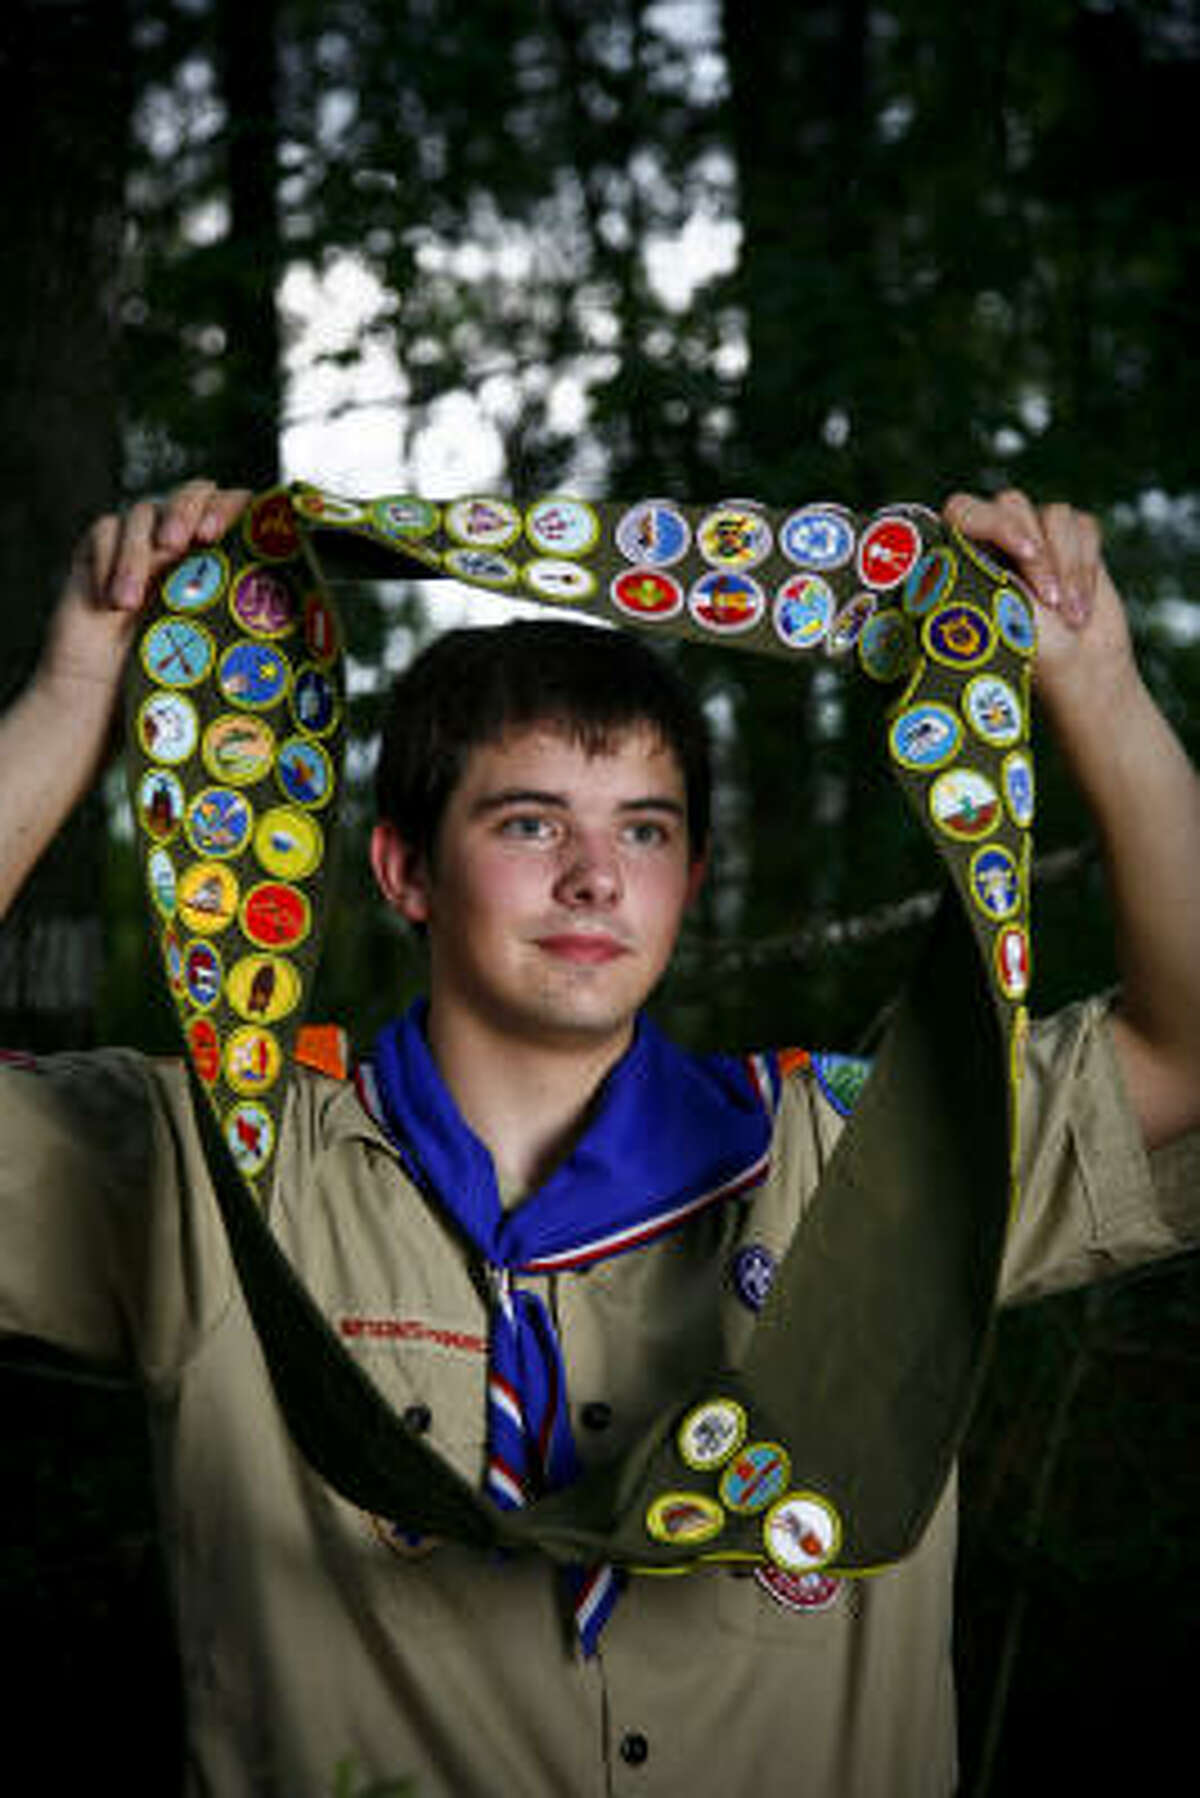 Nathaniel Buffington, 15, began earning badges after his family moved to the Houston area in 2005. He earned his last badge, Shotgun Shooting, a few weeks ago.